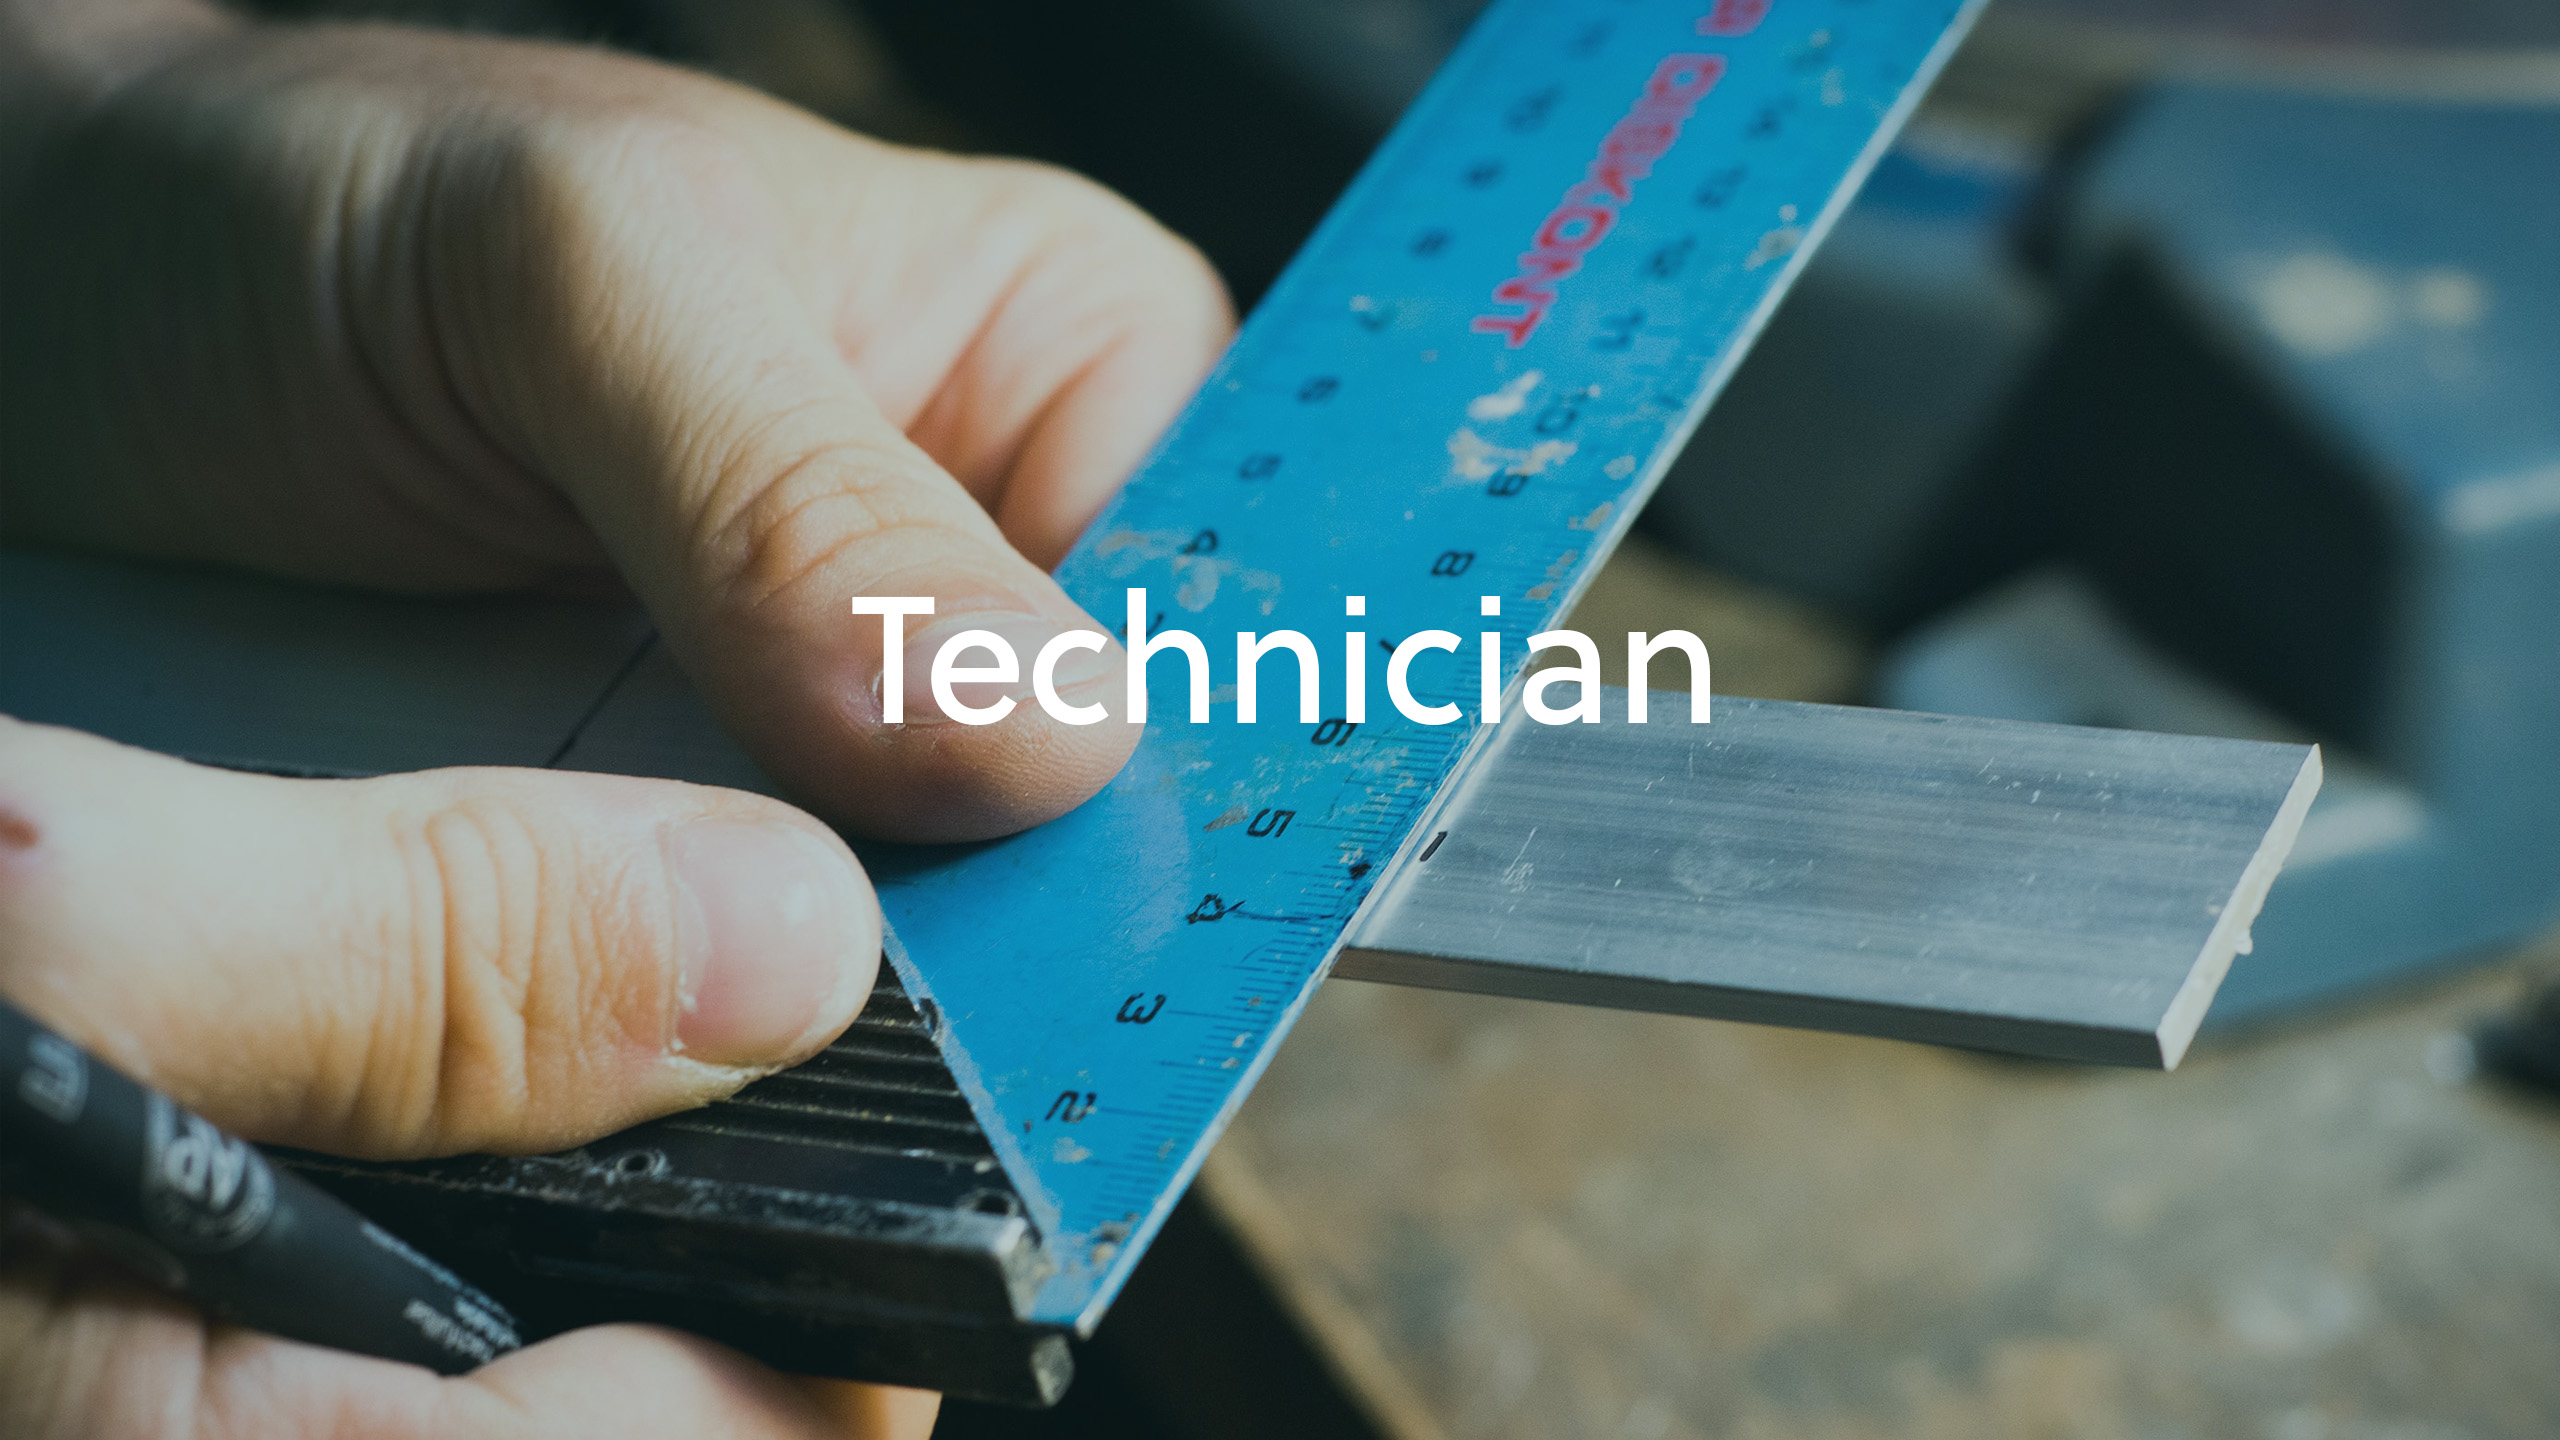 Technician Membership